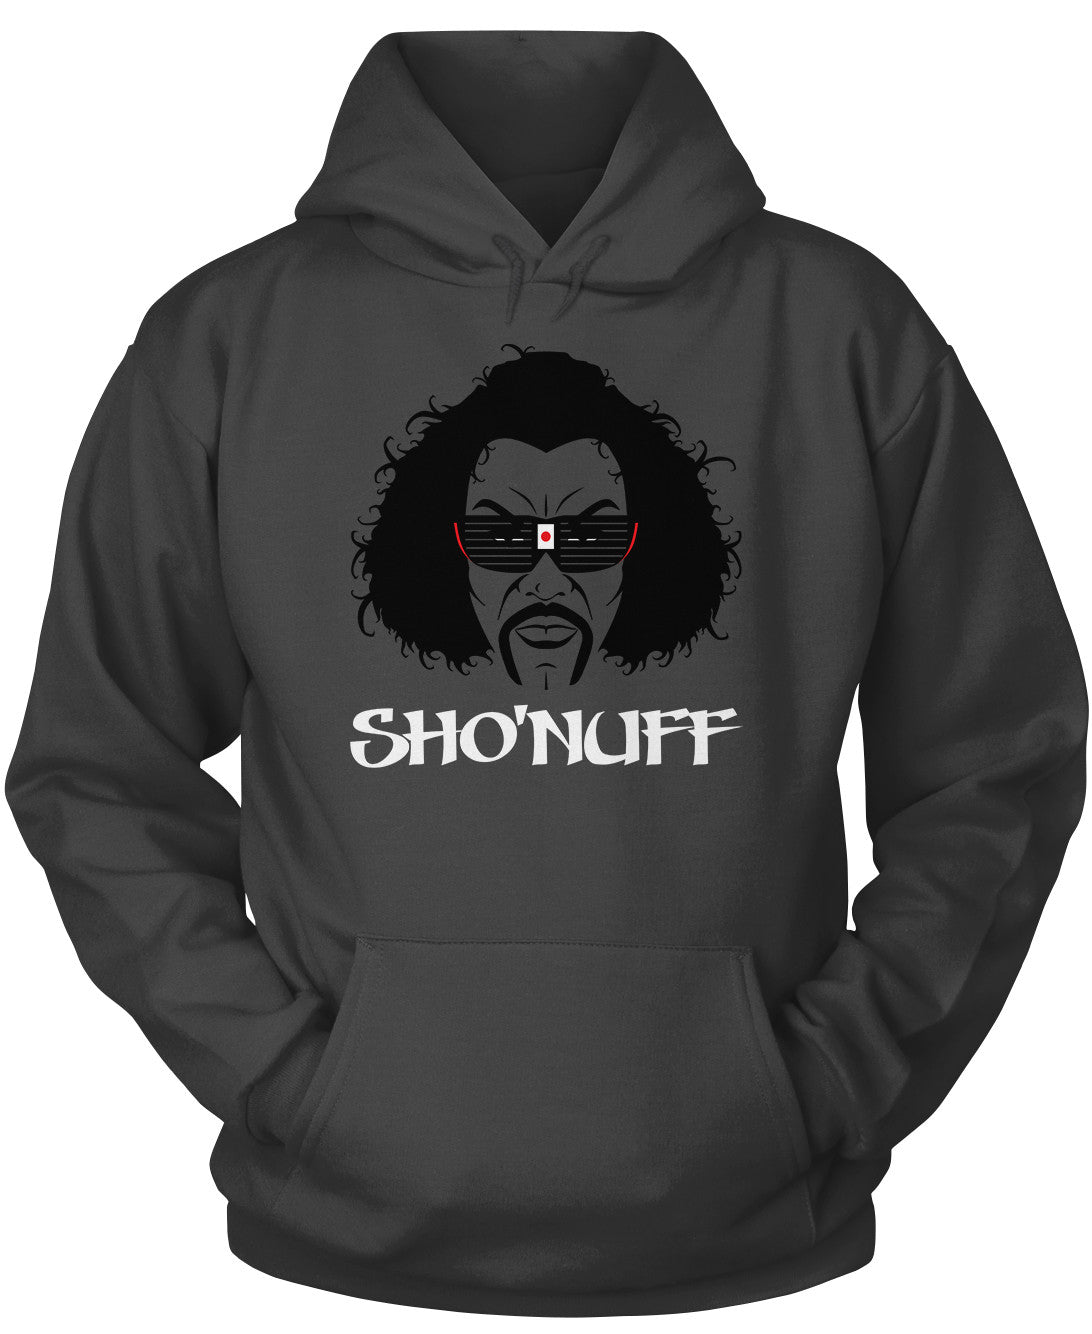 Sho'nuff Hoodie - Exclusive Limited Edition